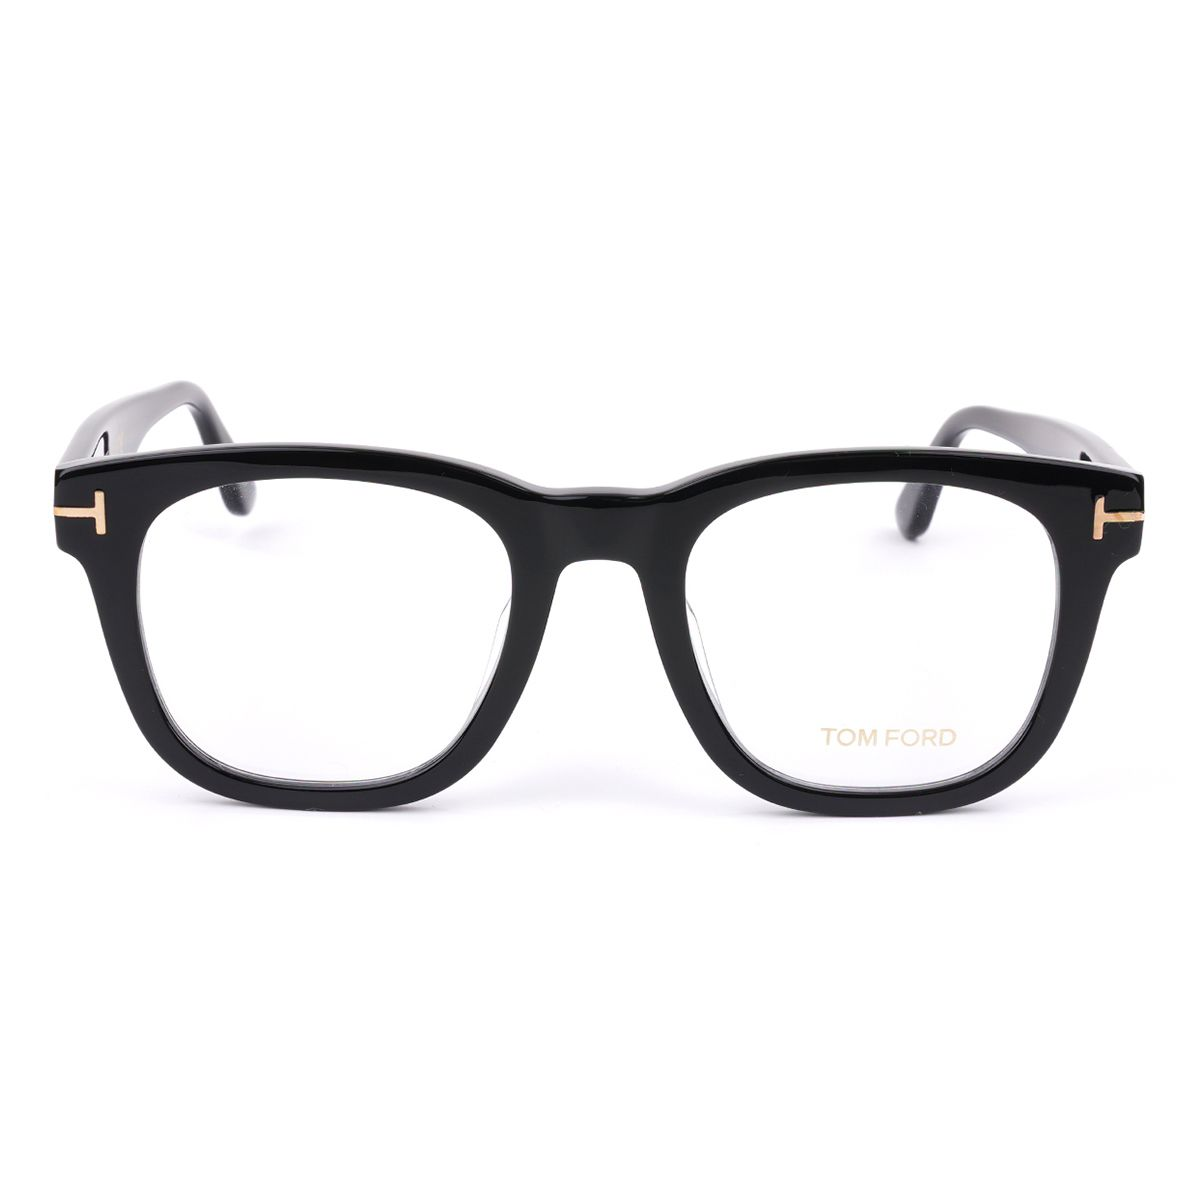 TOM FORD FRAMES/232FT00B80001 / BLACK (CLEAR)